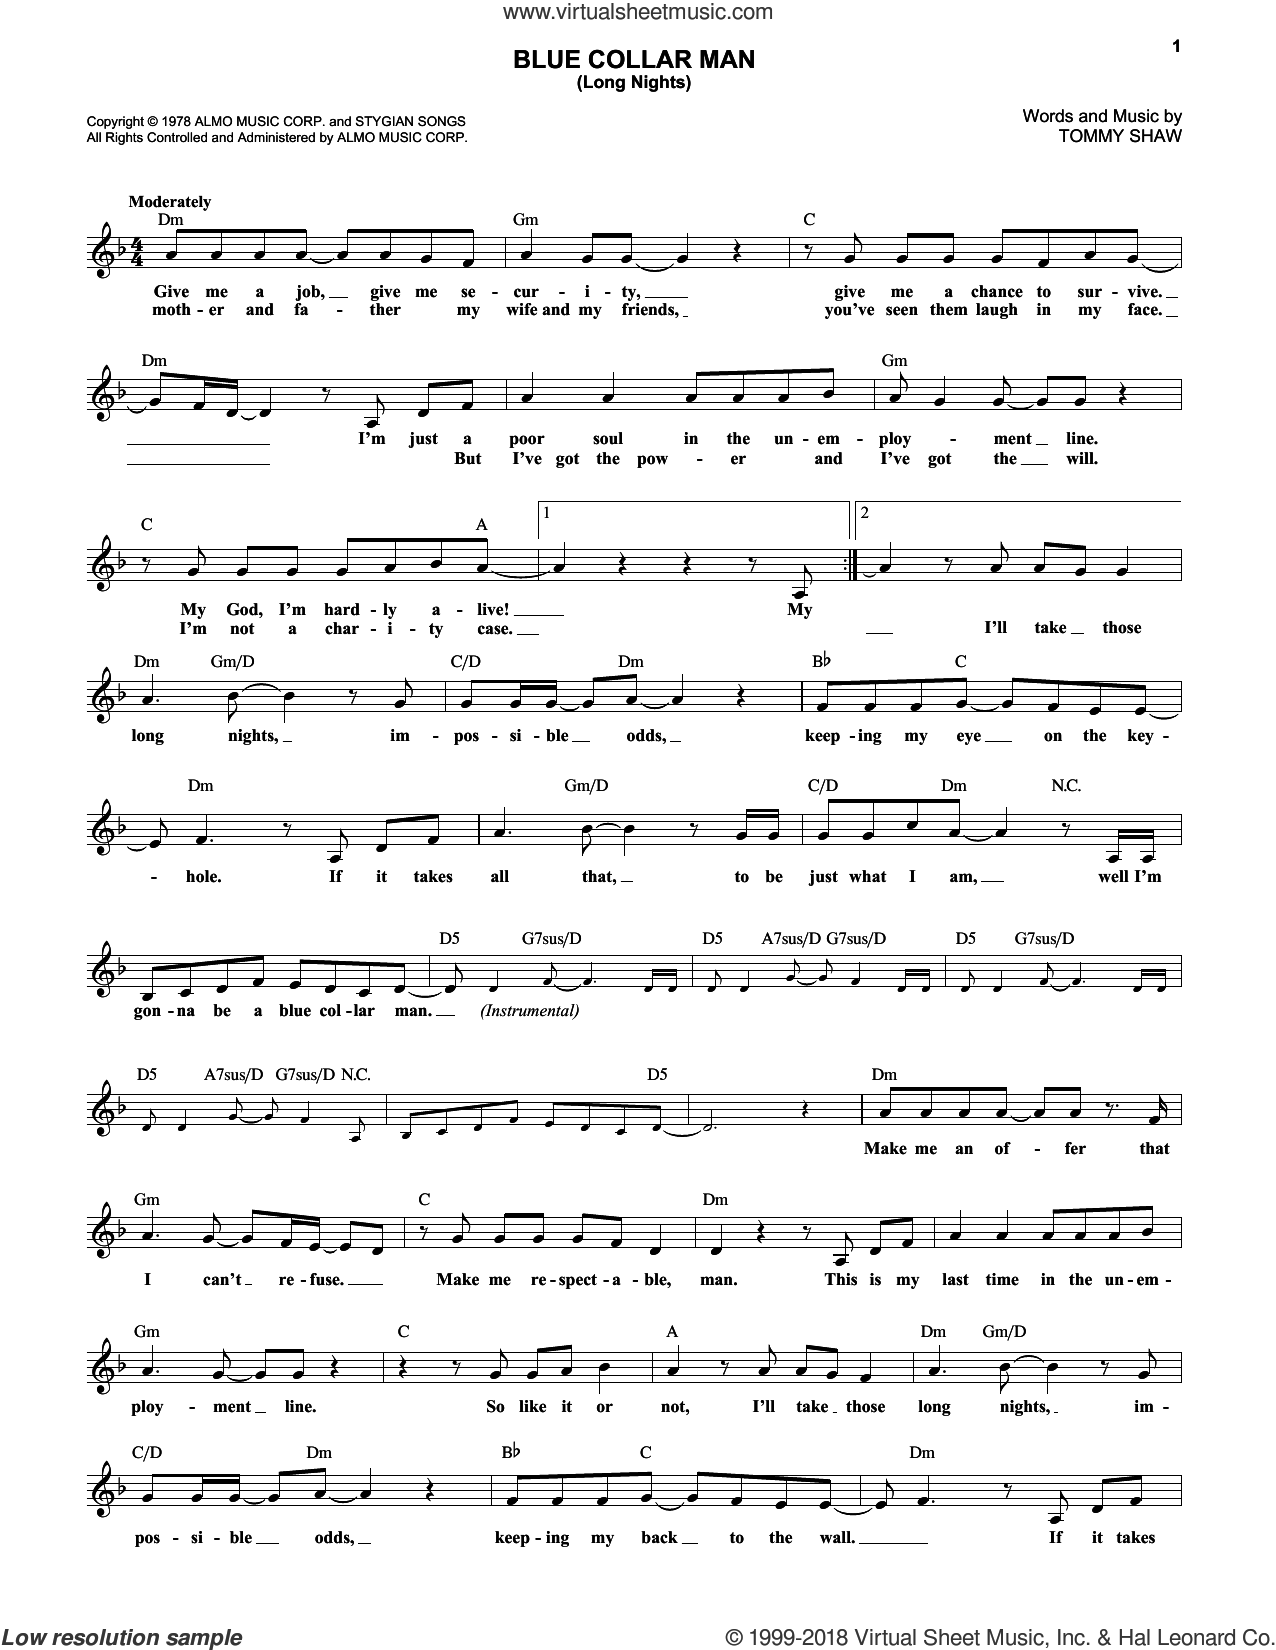 Blue Collar Man (Long Nights) sheet music for voice and other instruments (fake book) by Styx. Score Image Preview.